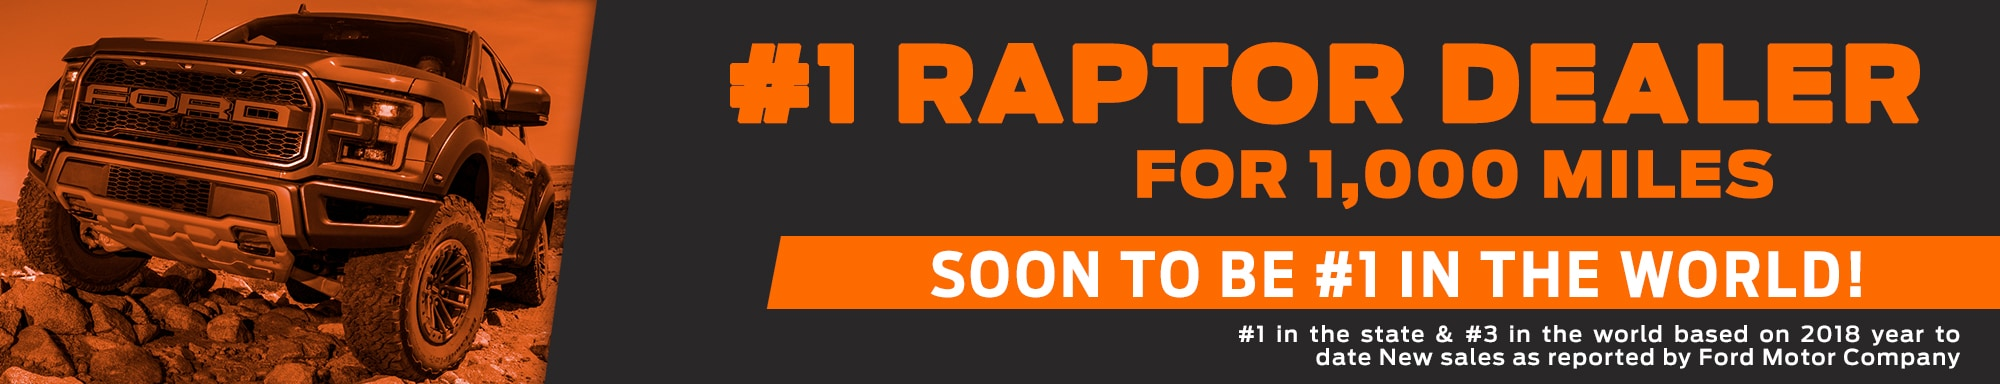 Orange and black banner with a 2020 Ford Raptor featured on the left side with text saying #1 Raptor dealer for 1000 miles soon to be #1 in the world